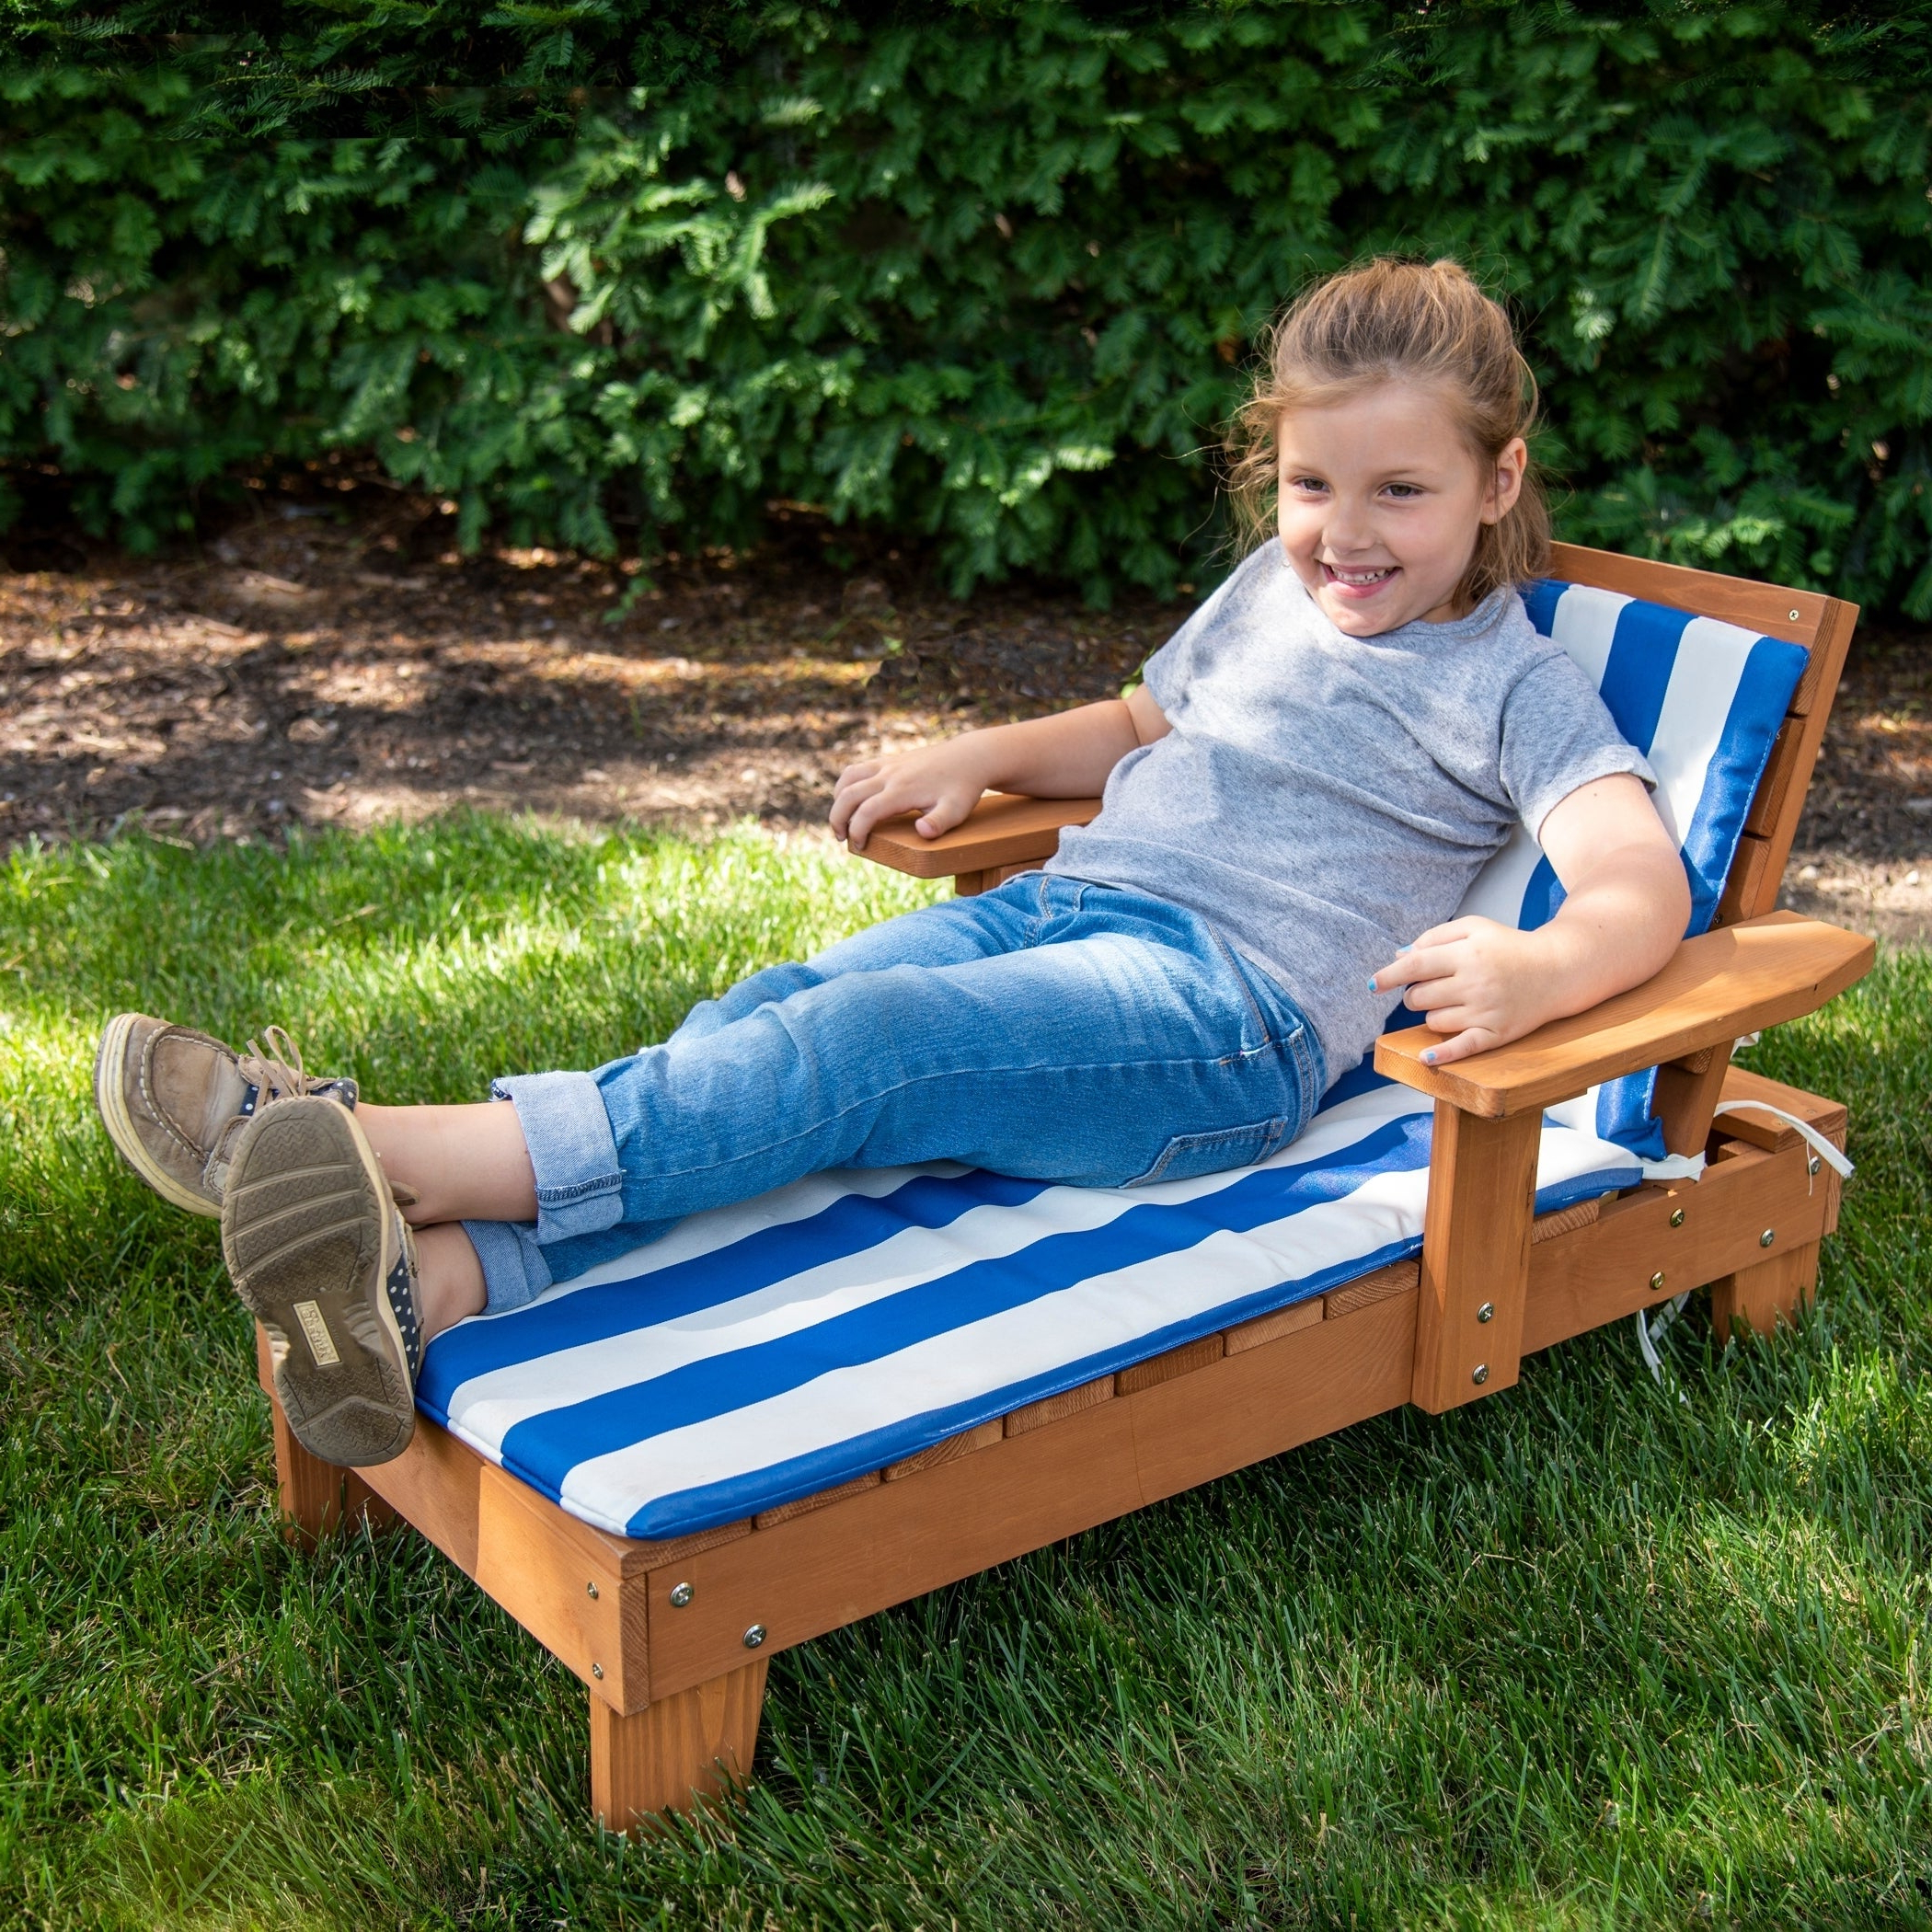 2020 Homeware Kid's Wood Blue And White Cushion Outdoor Chaise Lounge Chair Pertaining To Wood Blue And White Cushion Outdoor Chaise Lounge Chairs (View 3 of 25)